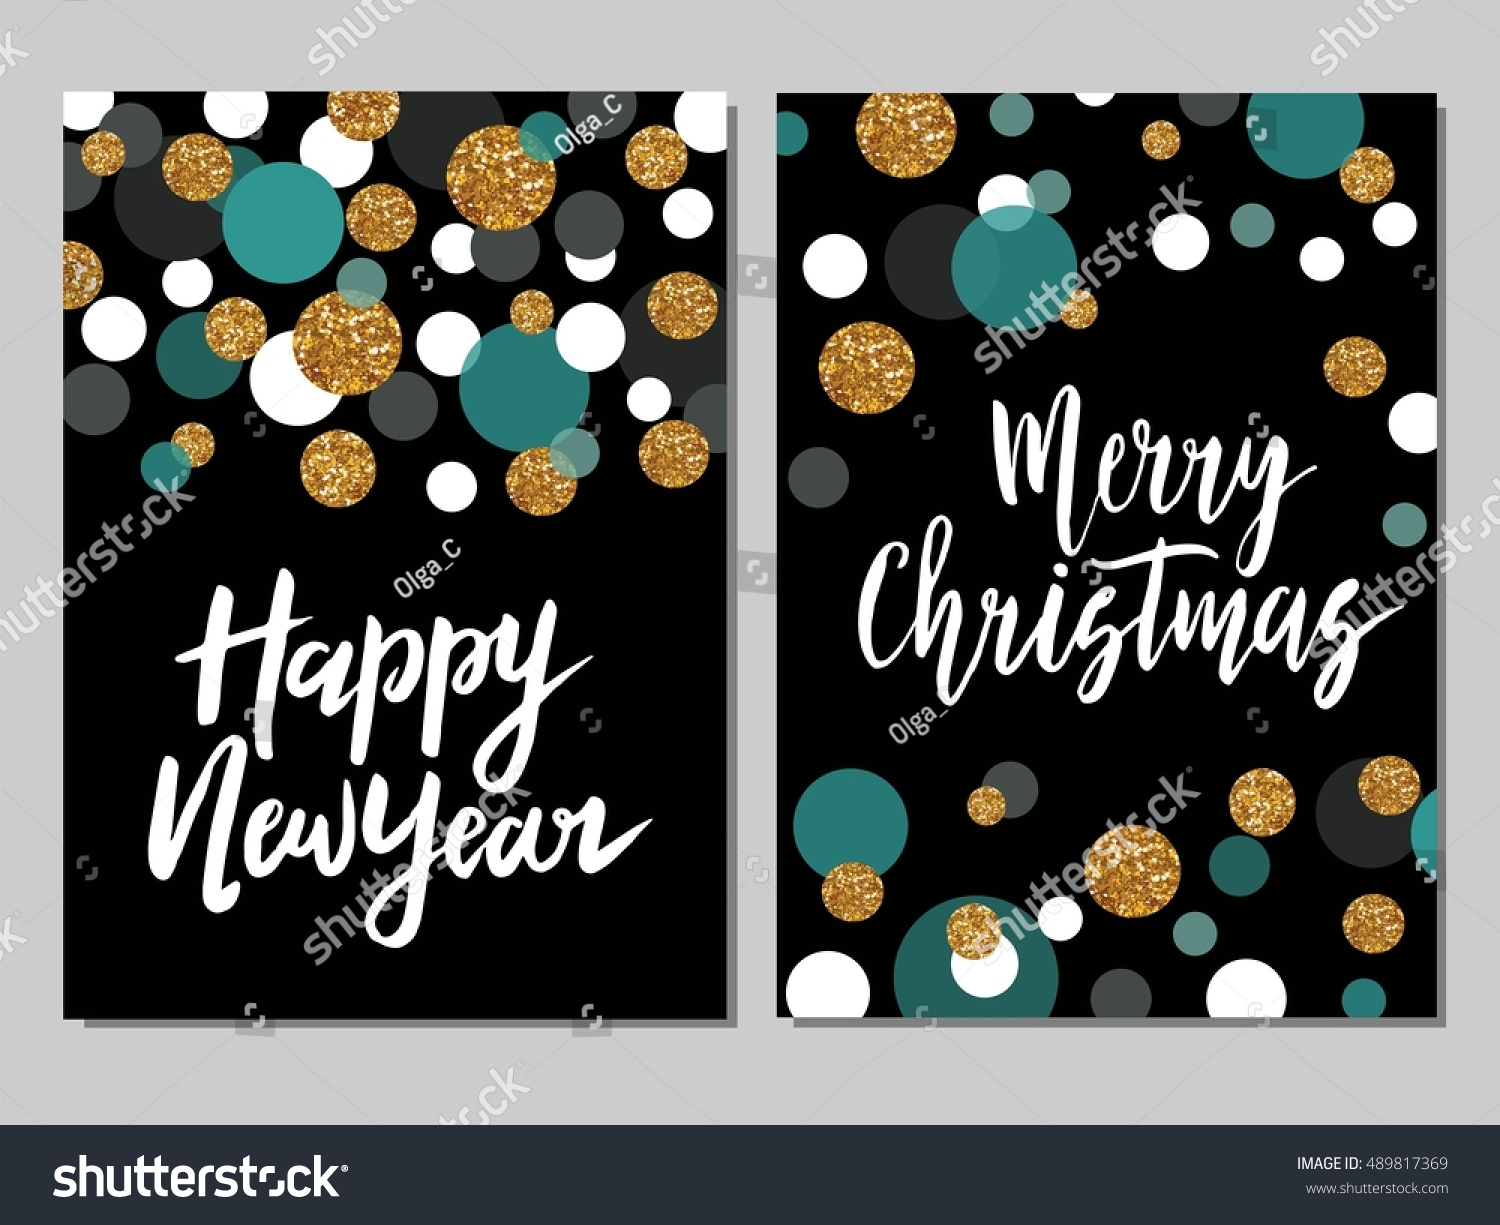 merry christmas and happy new year card template hand drawn lettering golden glitter shiny